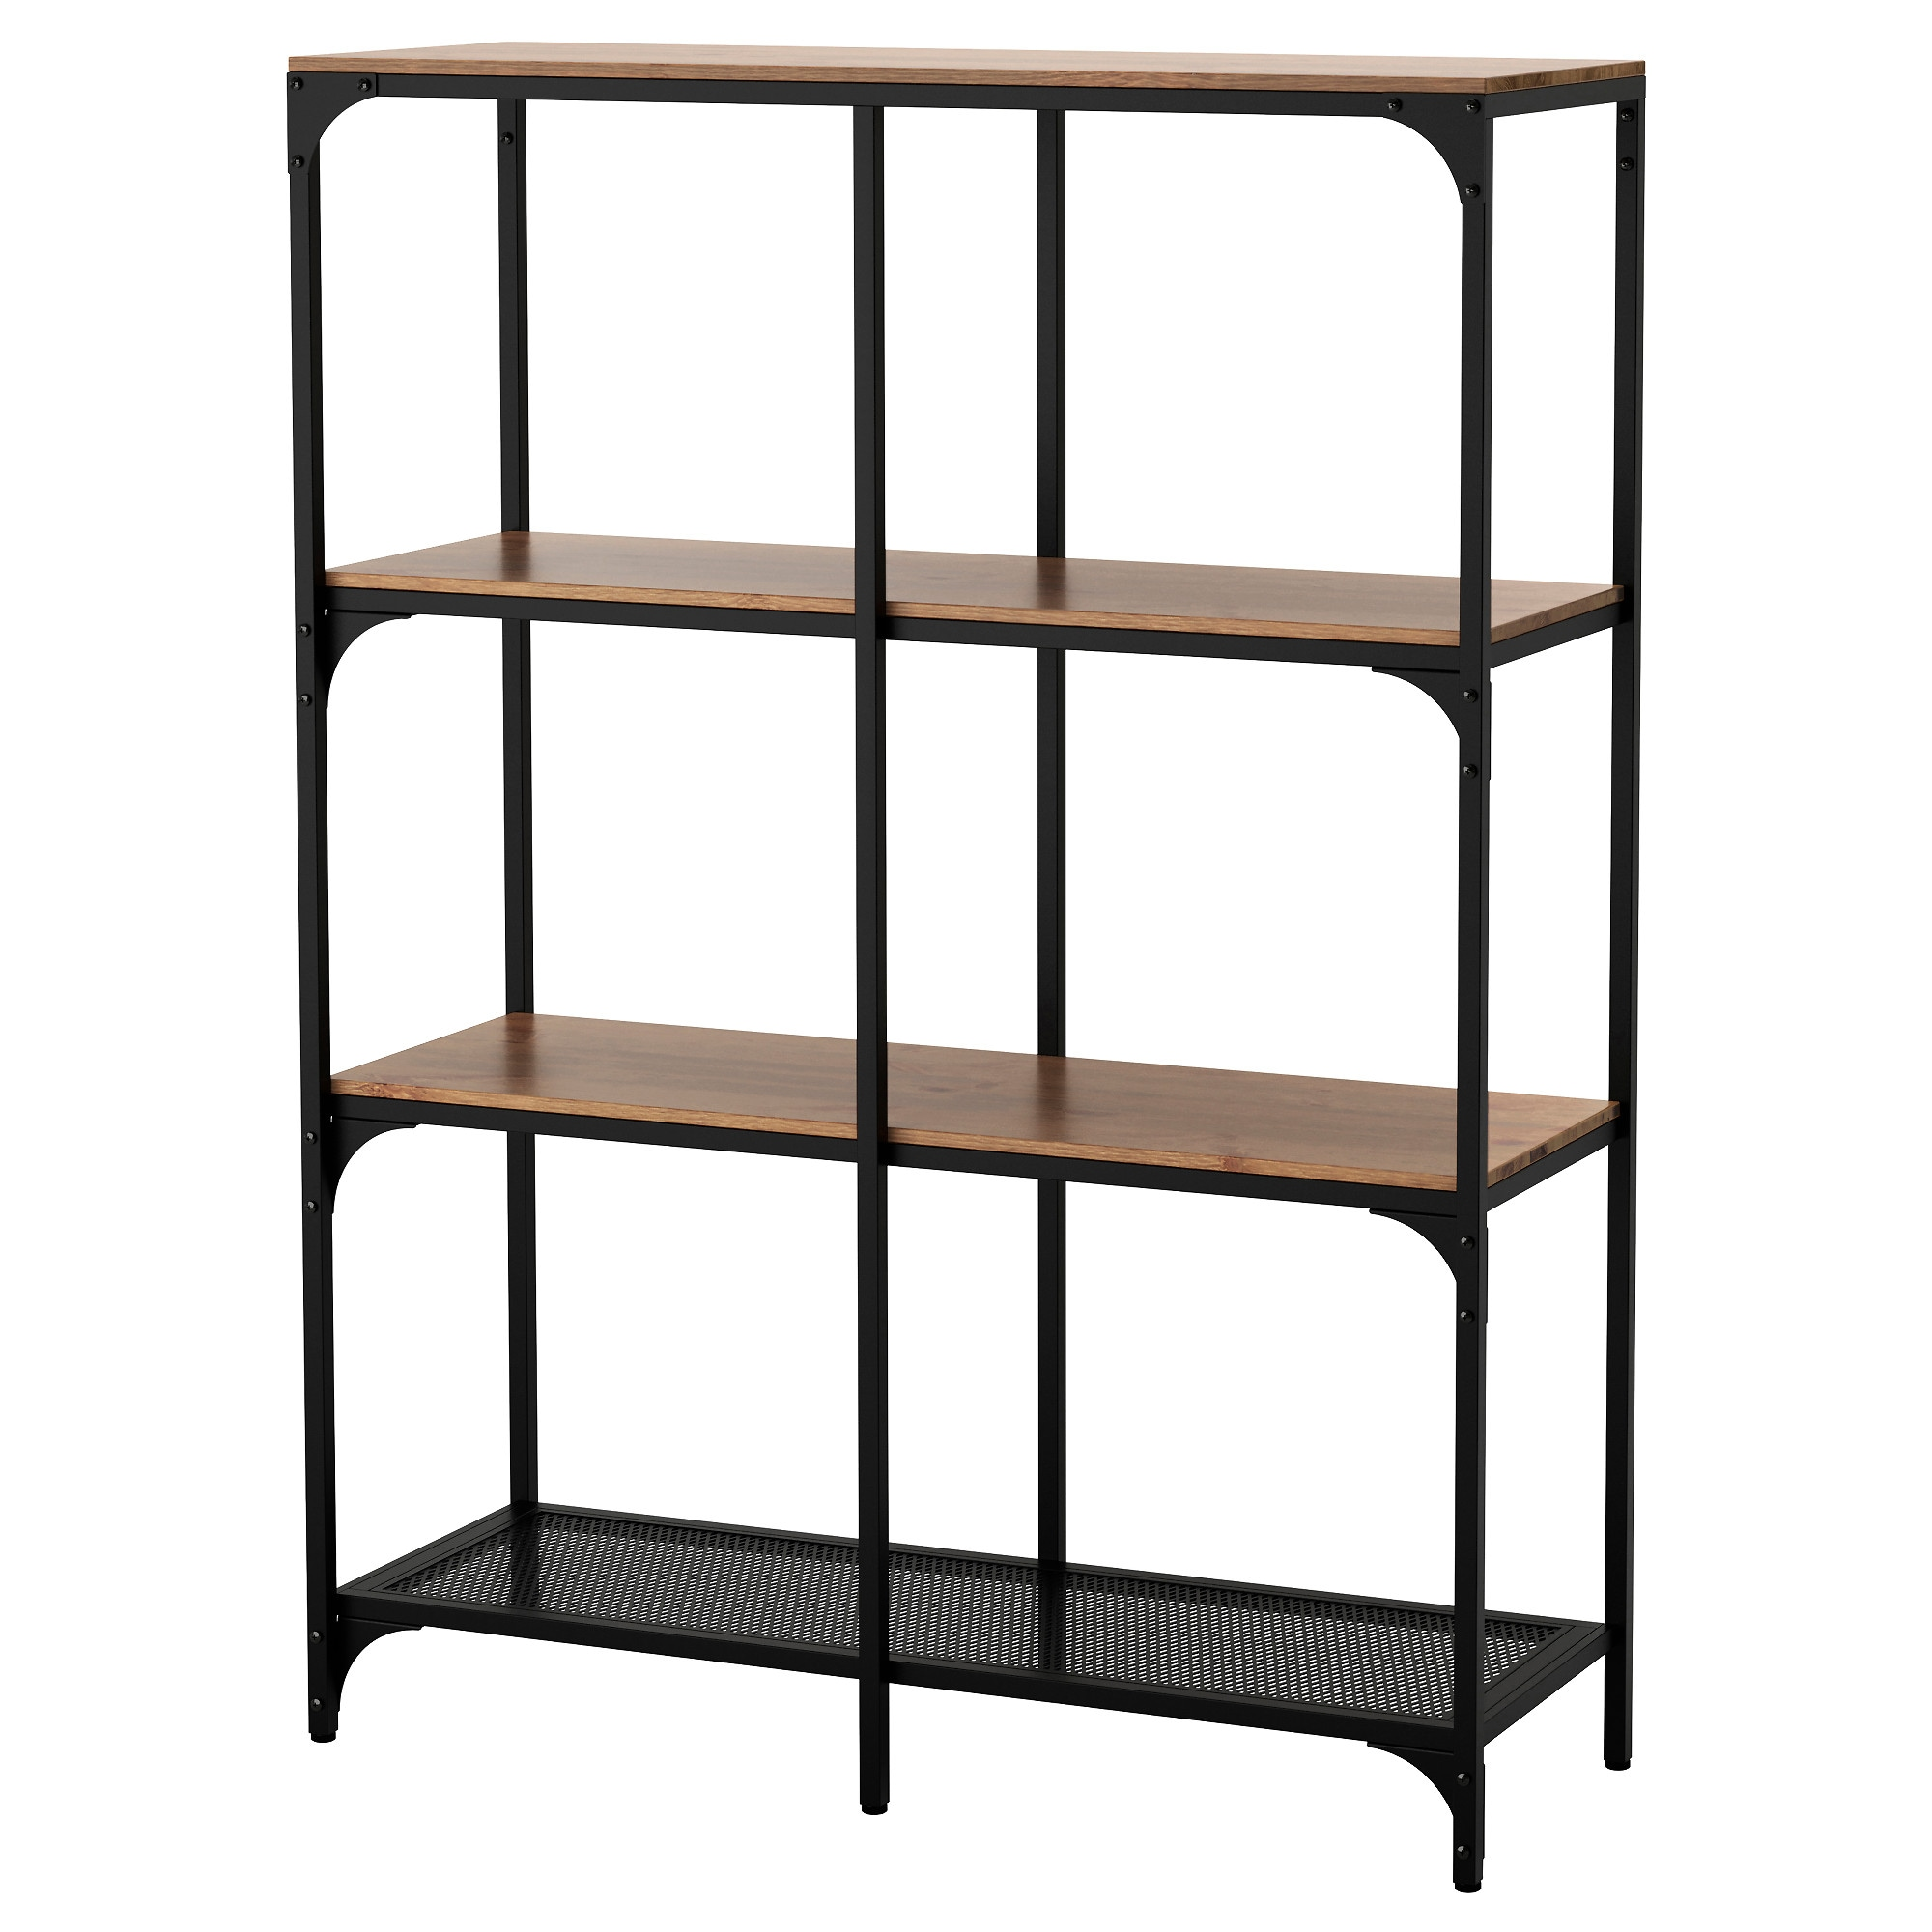 "FJ""LLBO Shelf unit IKEA"